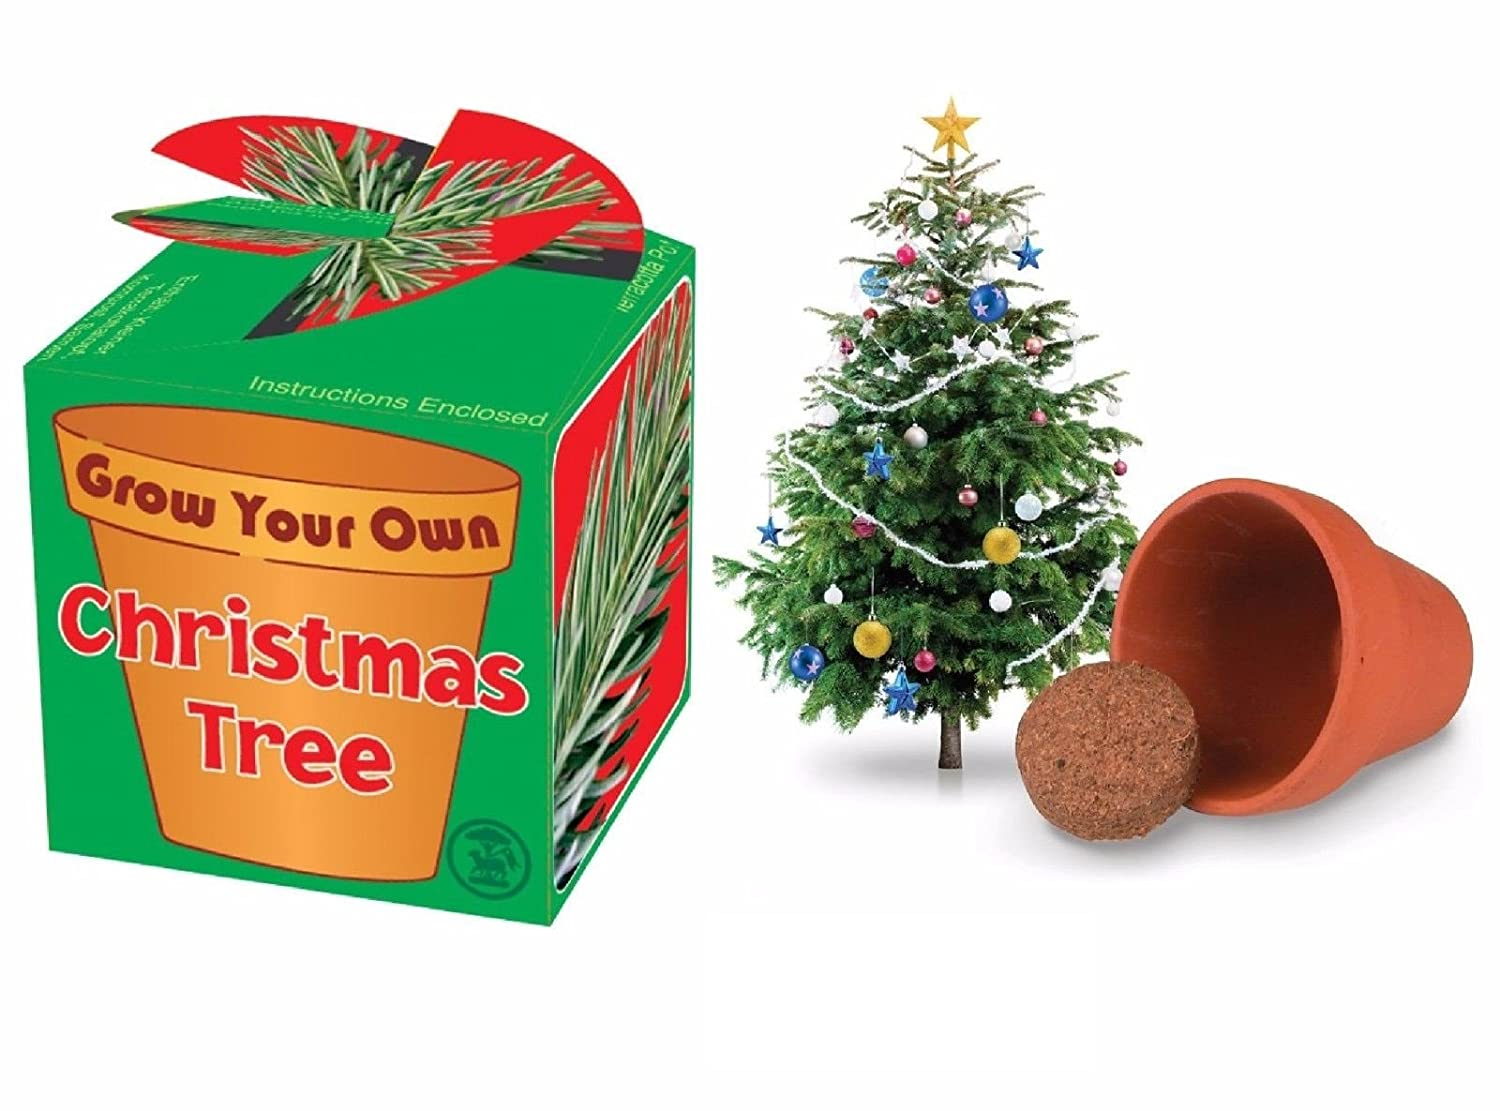 GROW YOUR OWN CHRISTMAS TREE KIT Kids Child Stocking Filler Plant Pot Box Gift by Lizzy® Tobar